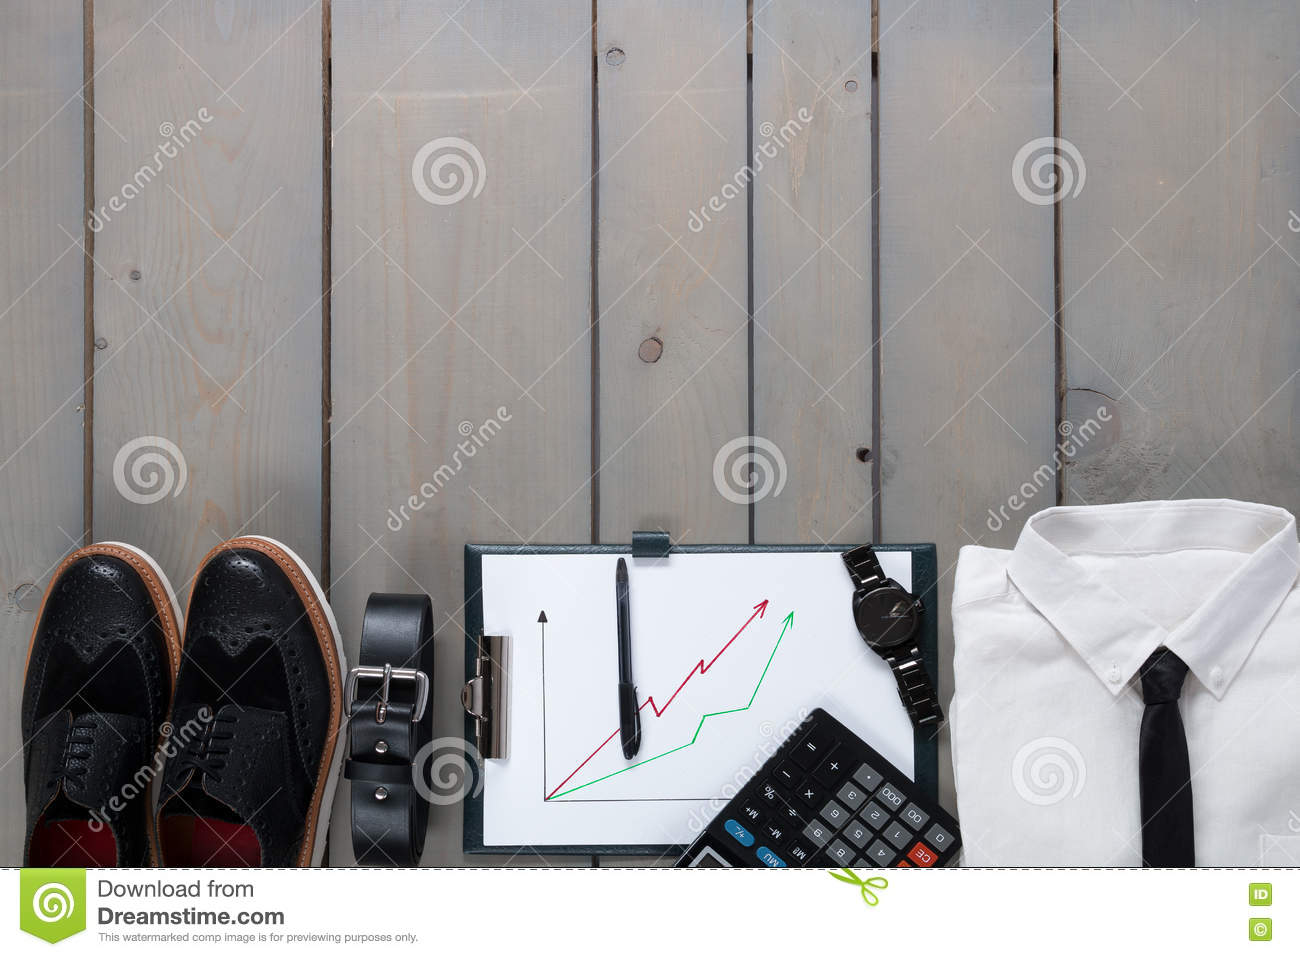 Businessman Work Outfit On Grey Wooden Background White Shirt With How To Diagram Of Tie Shoes Black Watch